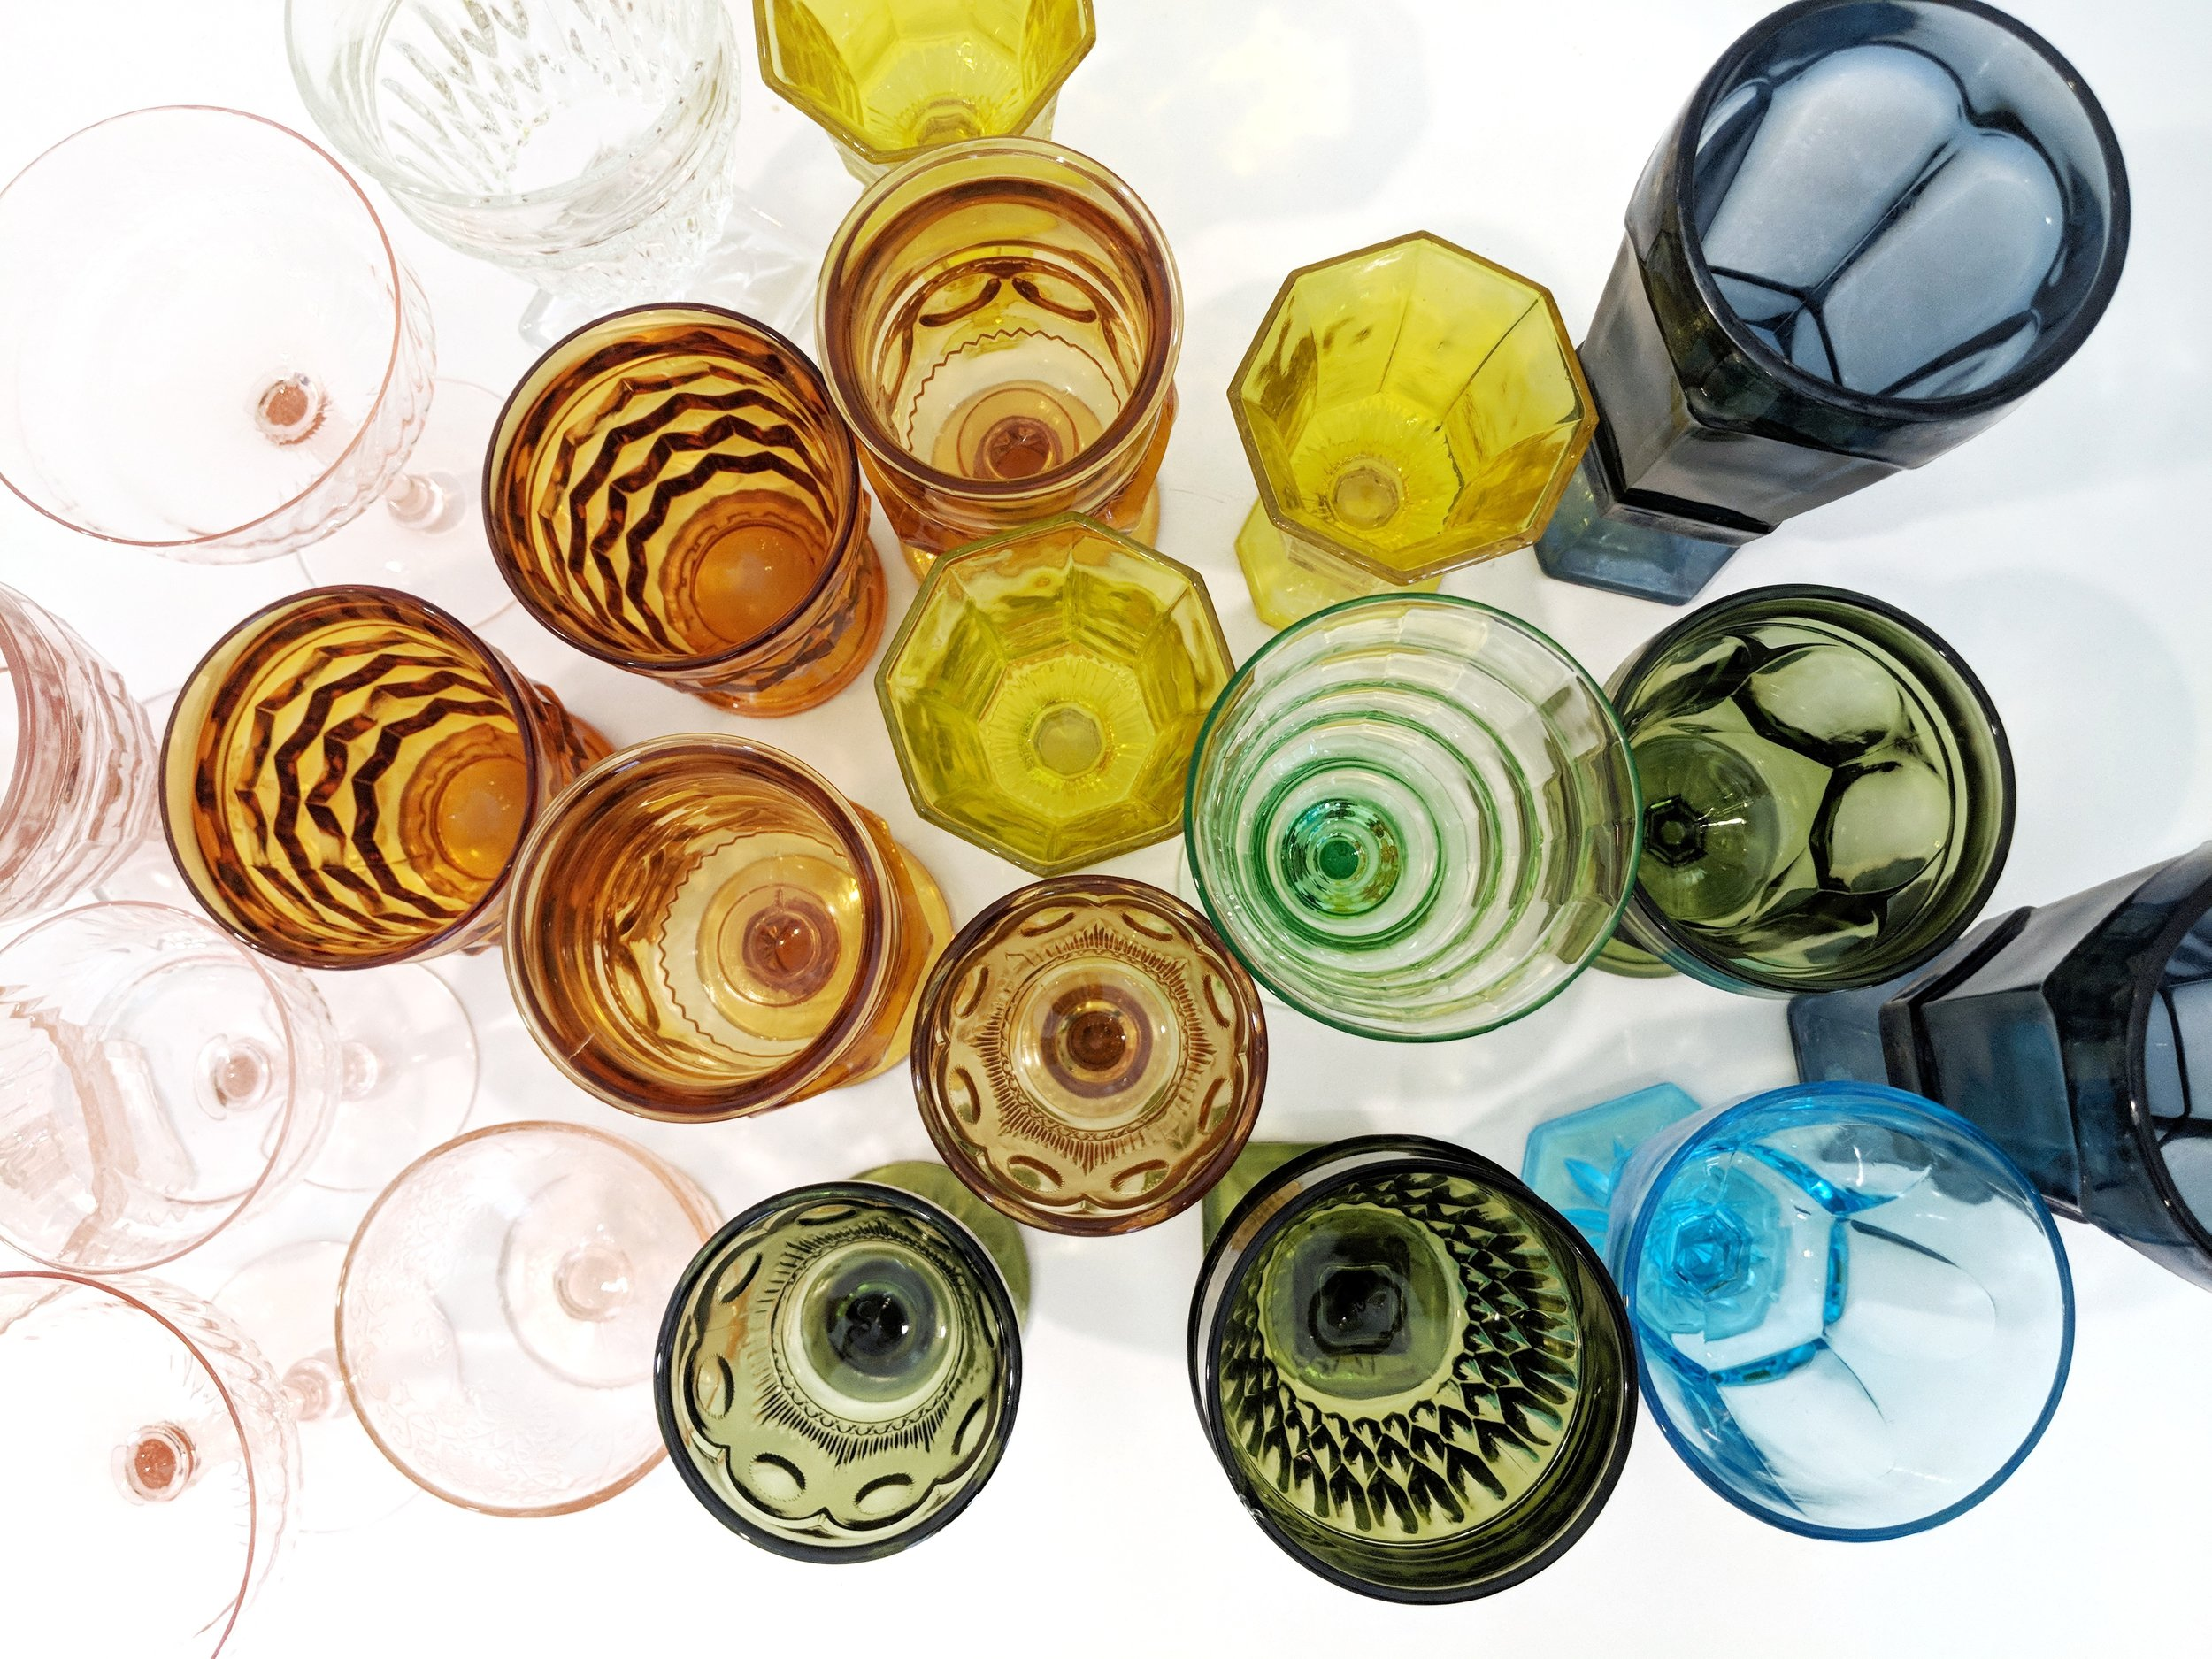 My growing collection of Depression glass goblets and wine glasses.